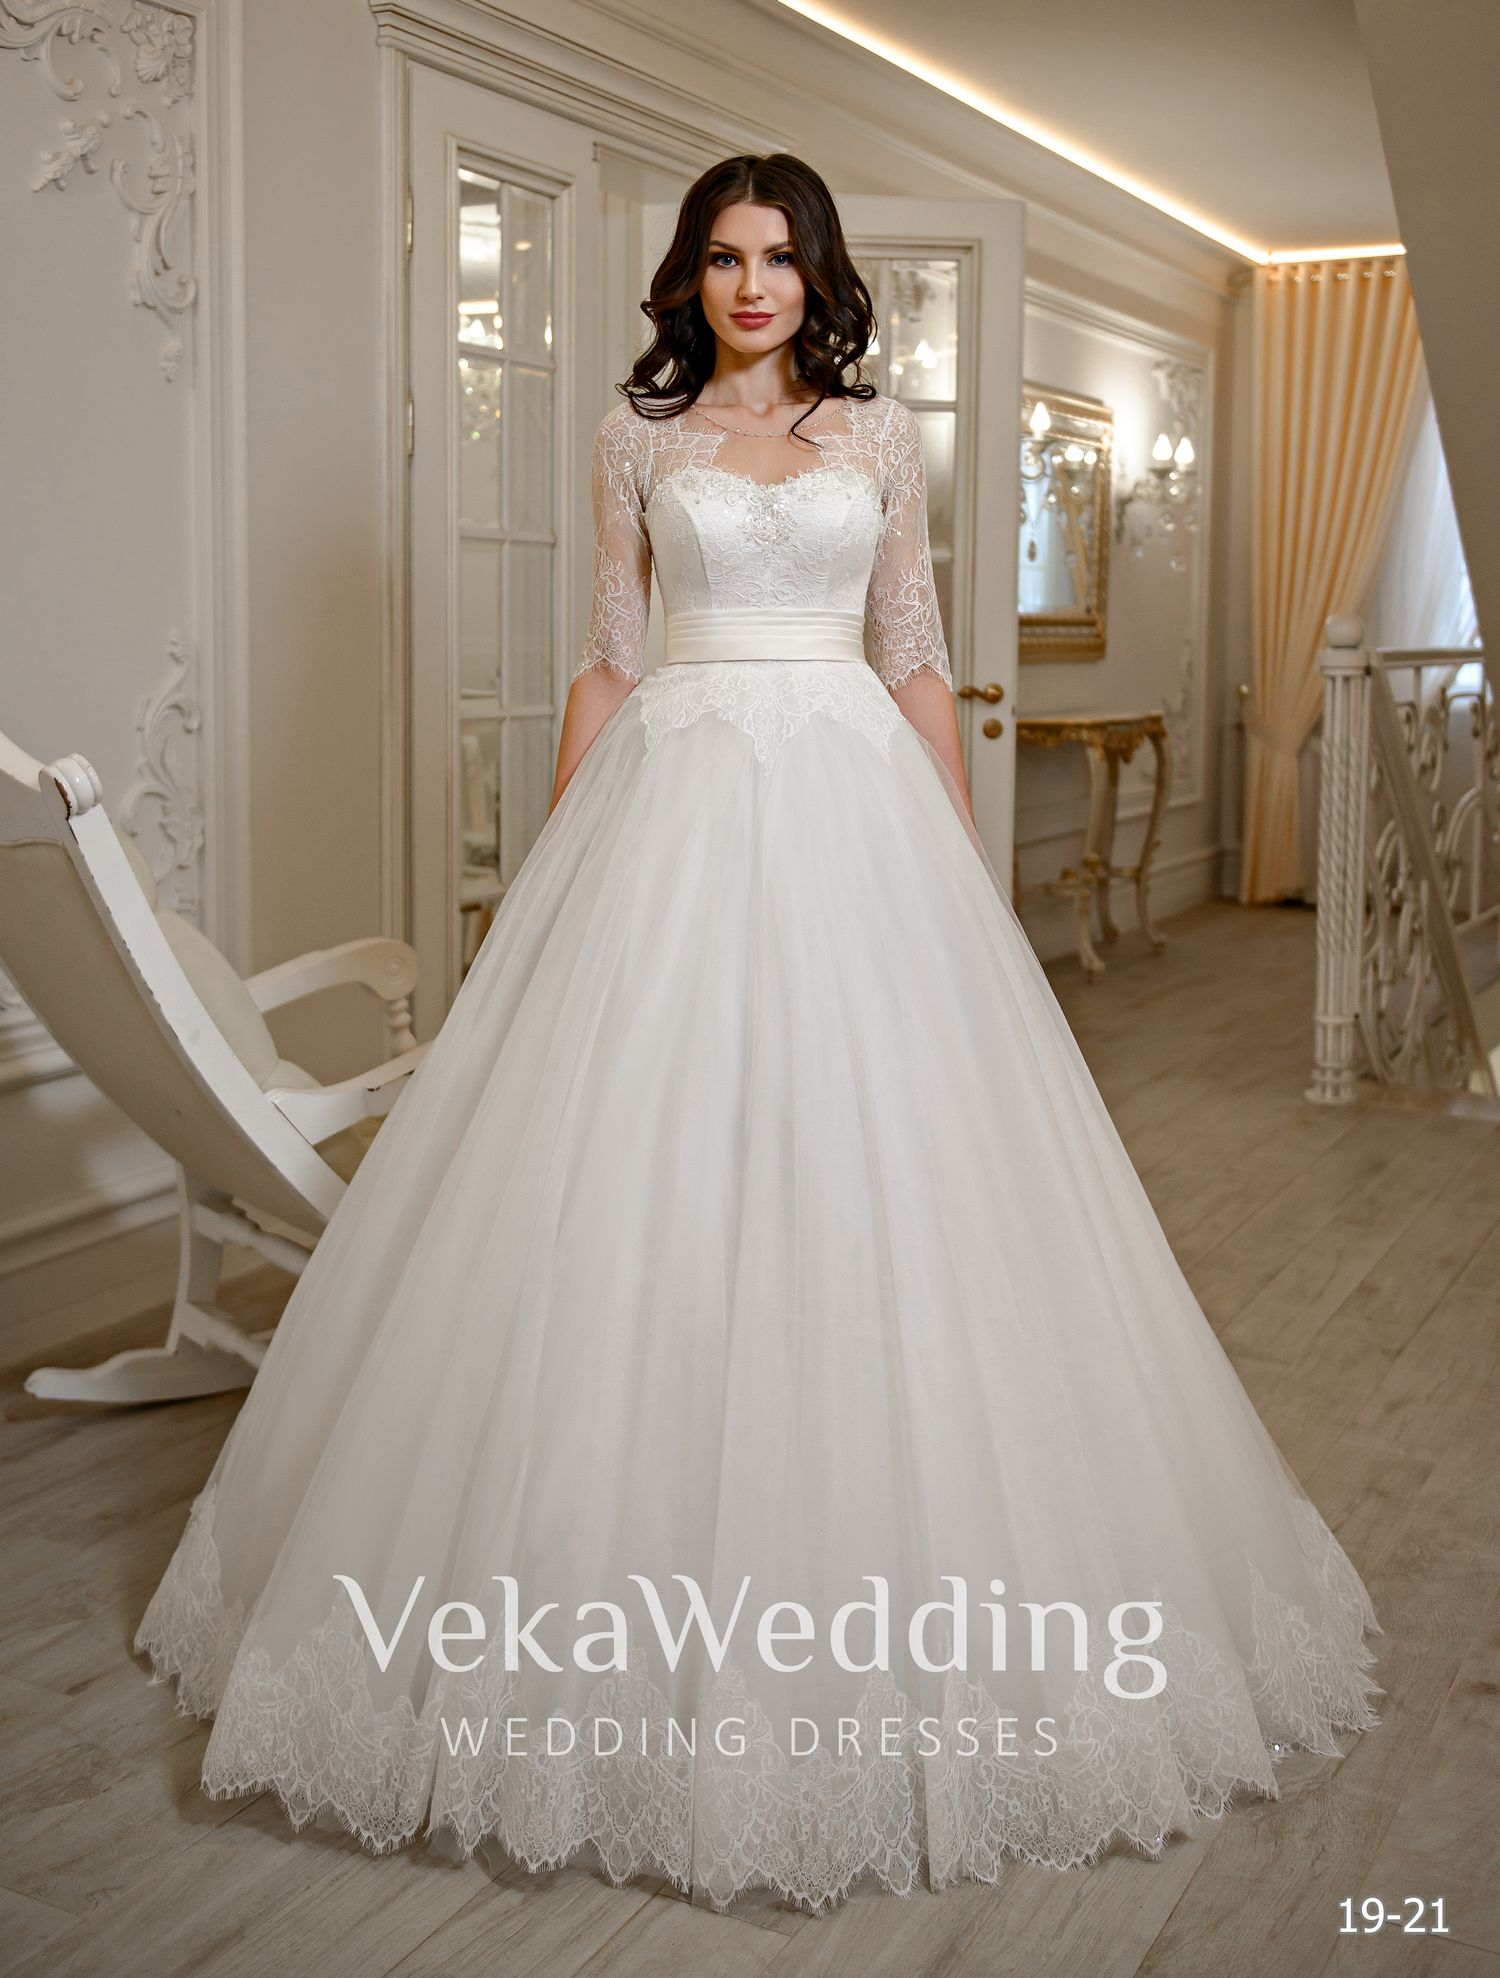 https://vekawedding.com/images/stories/virtuemart/product/19-21       (1).jpg